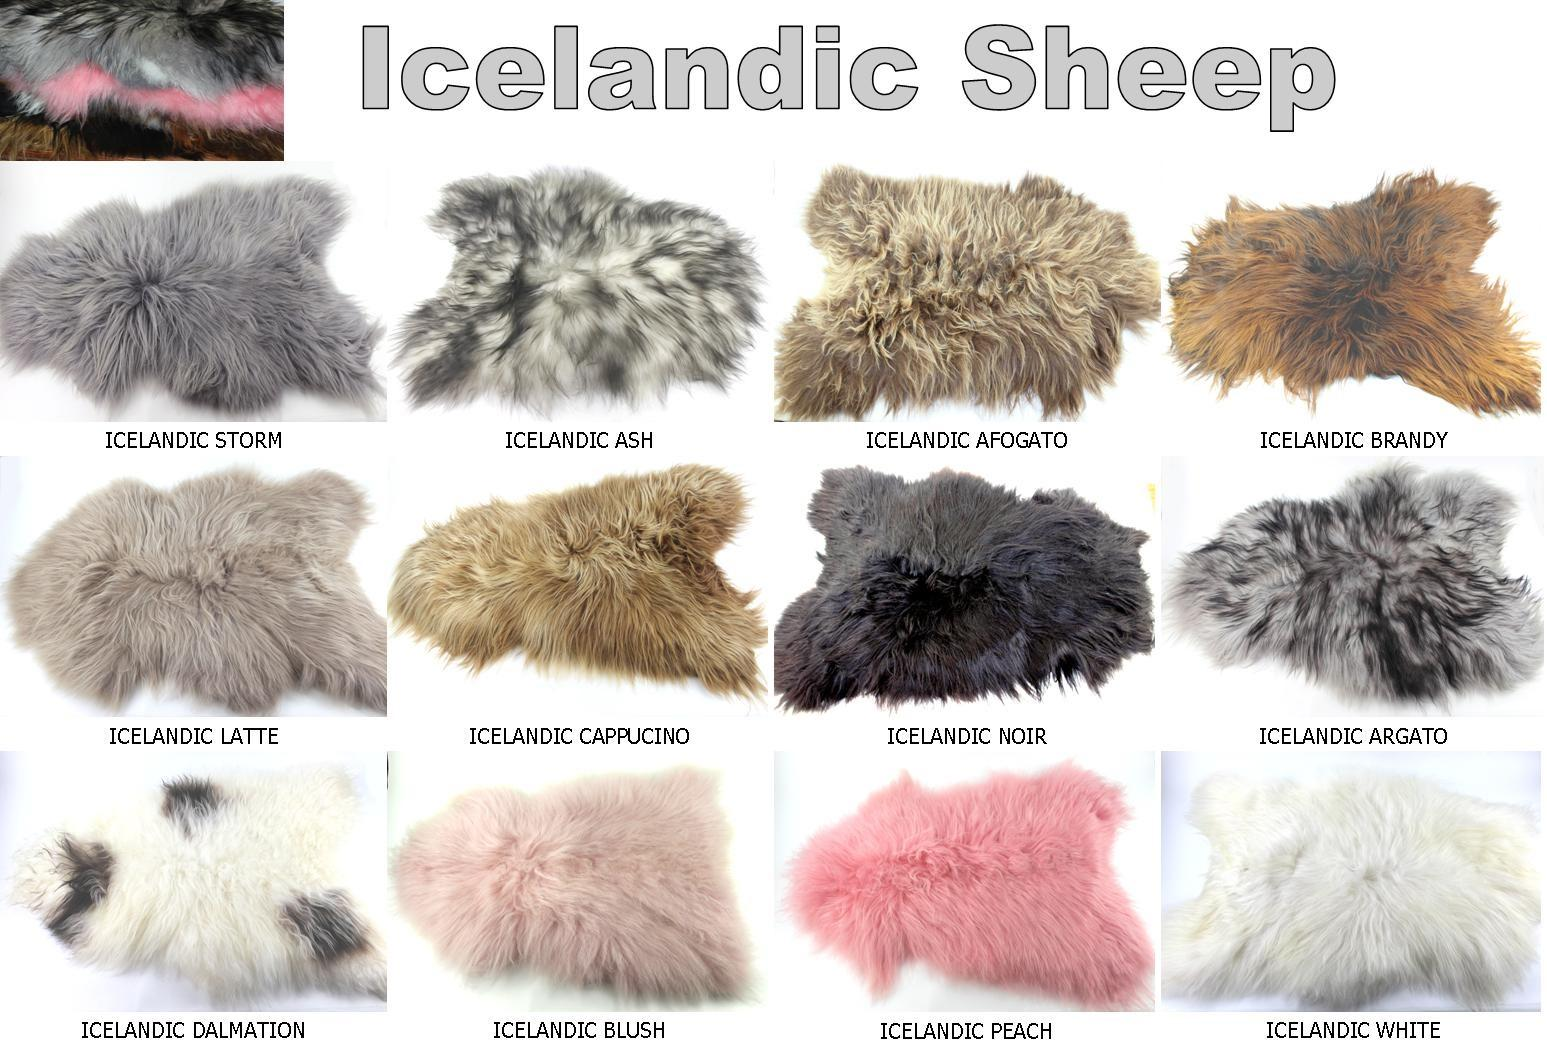 Icelandic Sheep skins